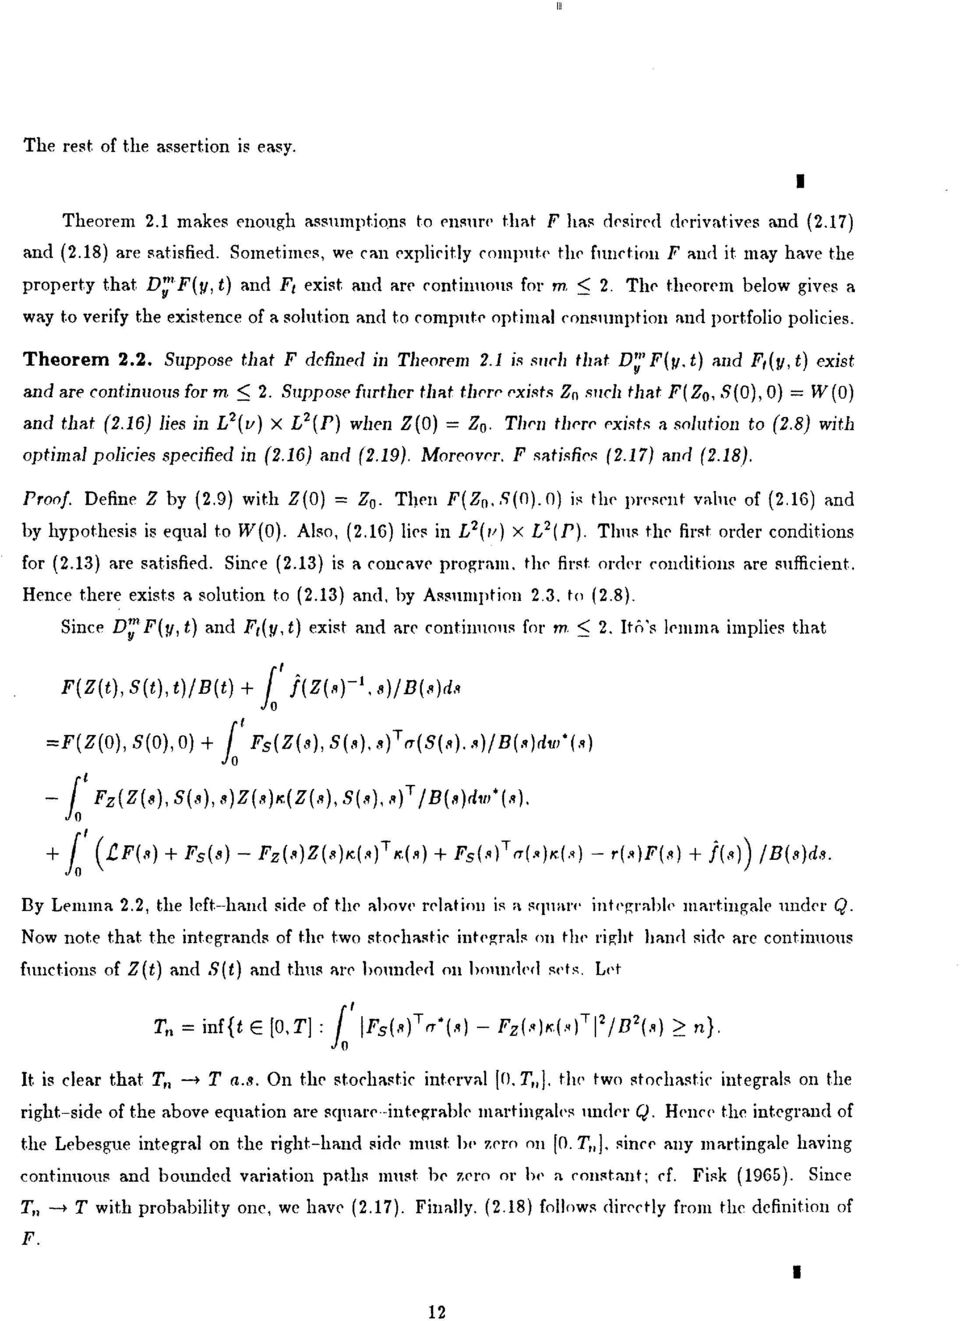 The theorem below gives a way to verify the existence of a solution and to compute optimal consmlinltion and )ortfolio policies. Theorem 2.2. Suppose that F defined in Theorem 2.